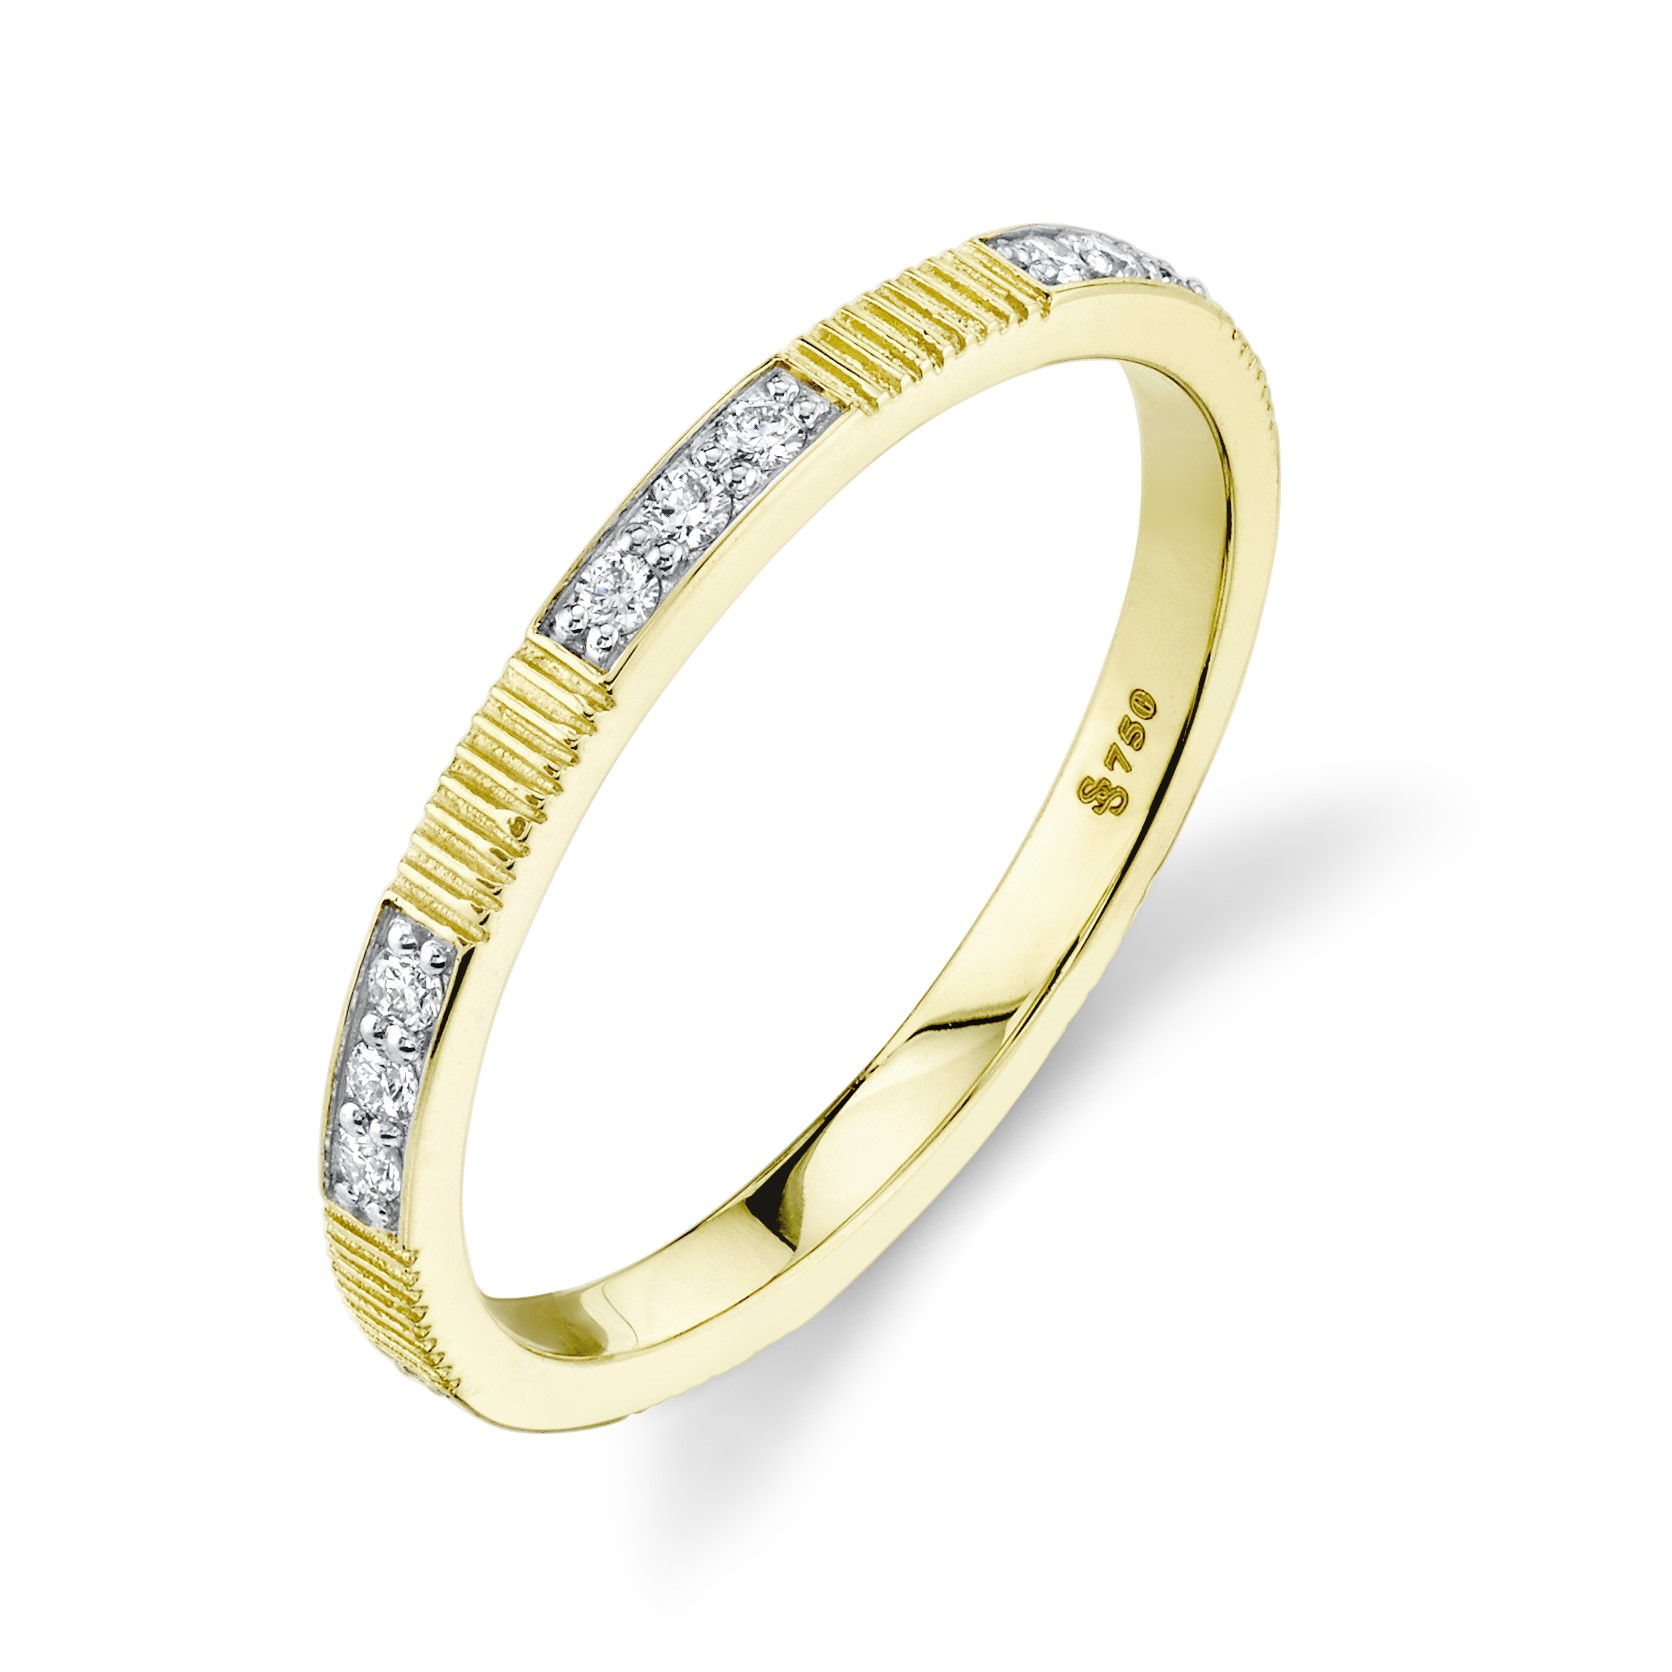 Sloane Street 18K Yellow Gold ..15cts  Diaamonds Gold Ring with Stones R023-WDCB-Y